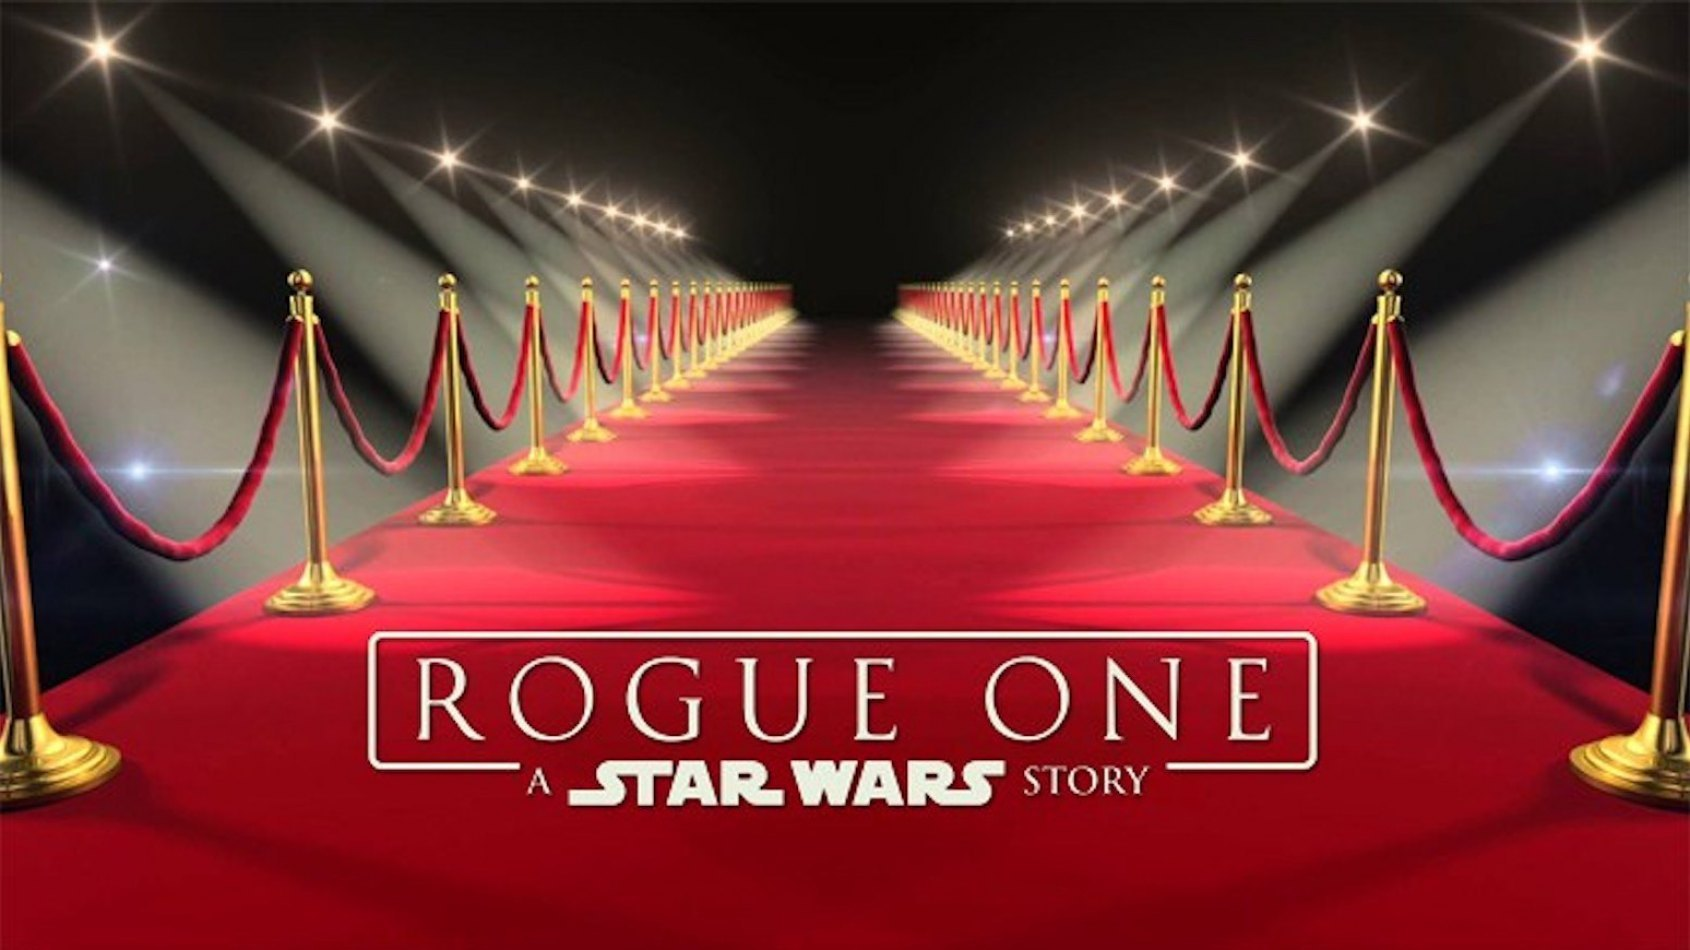 Le live stream de la 'Rogue One Red Carpet Premiere' aura lieu samedi